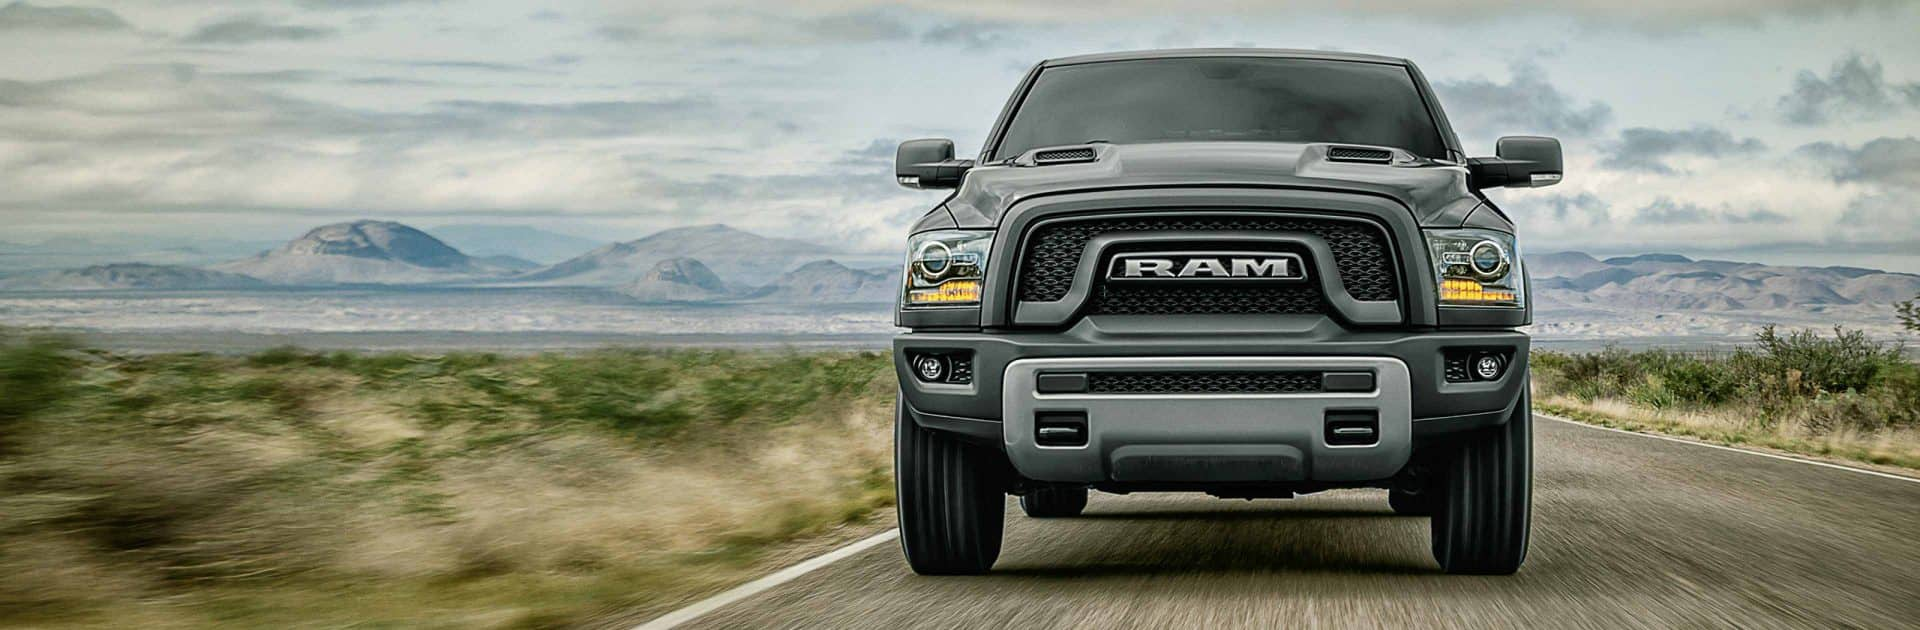 2018 Ram Trucks 1500 - Towing and Capability Features